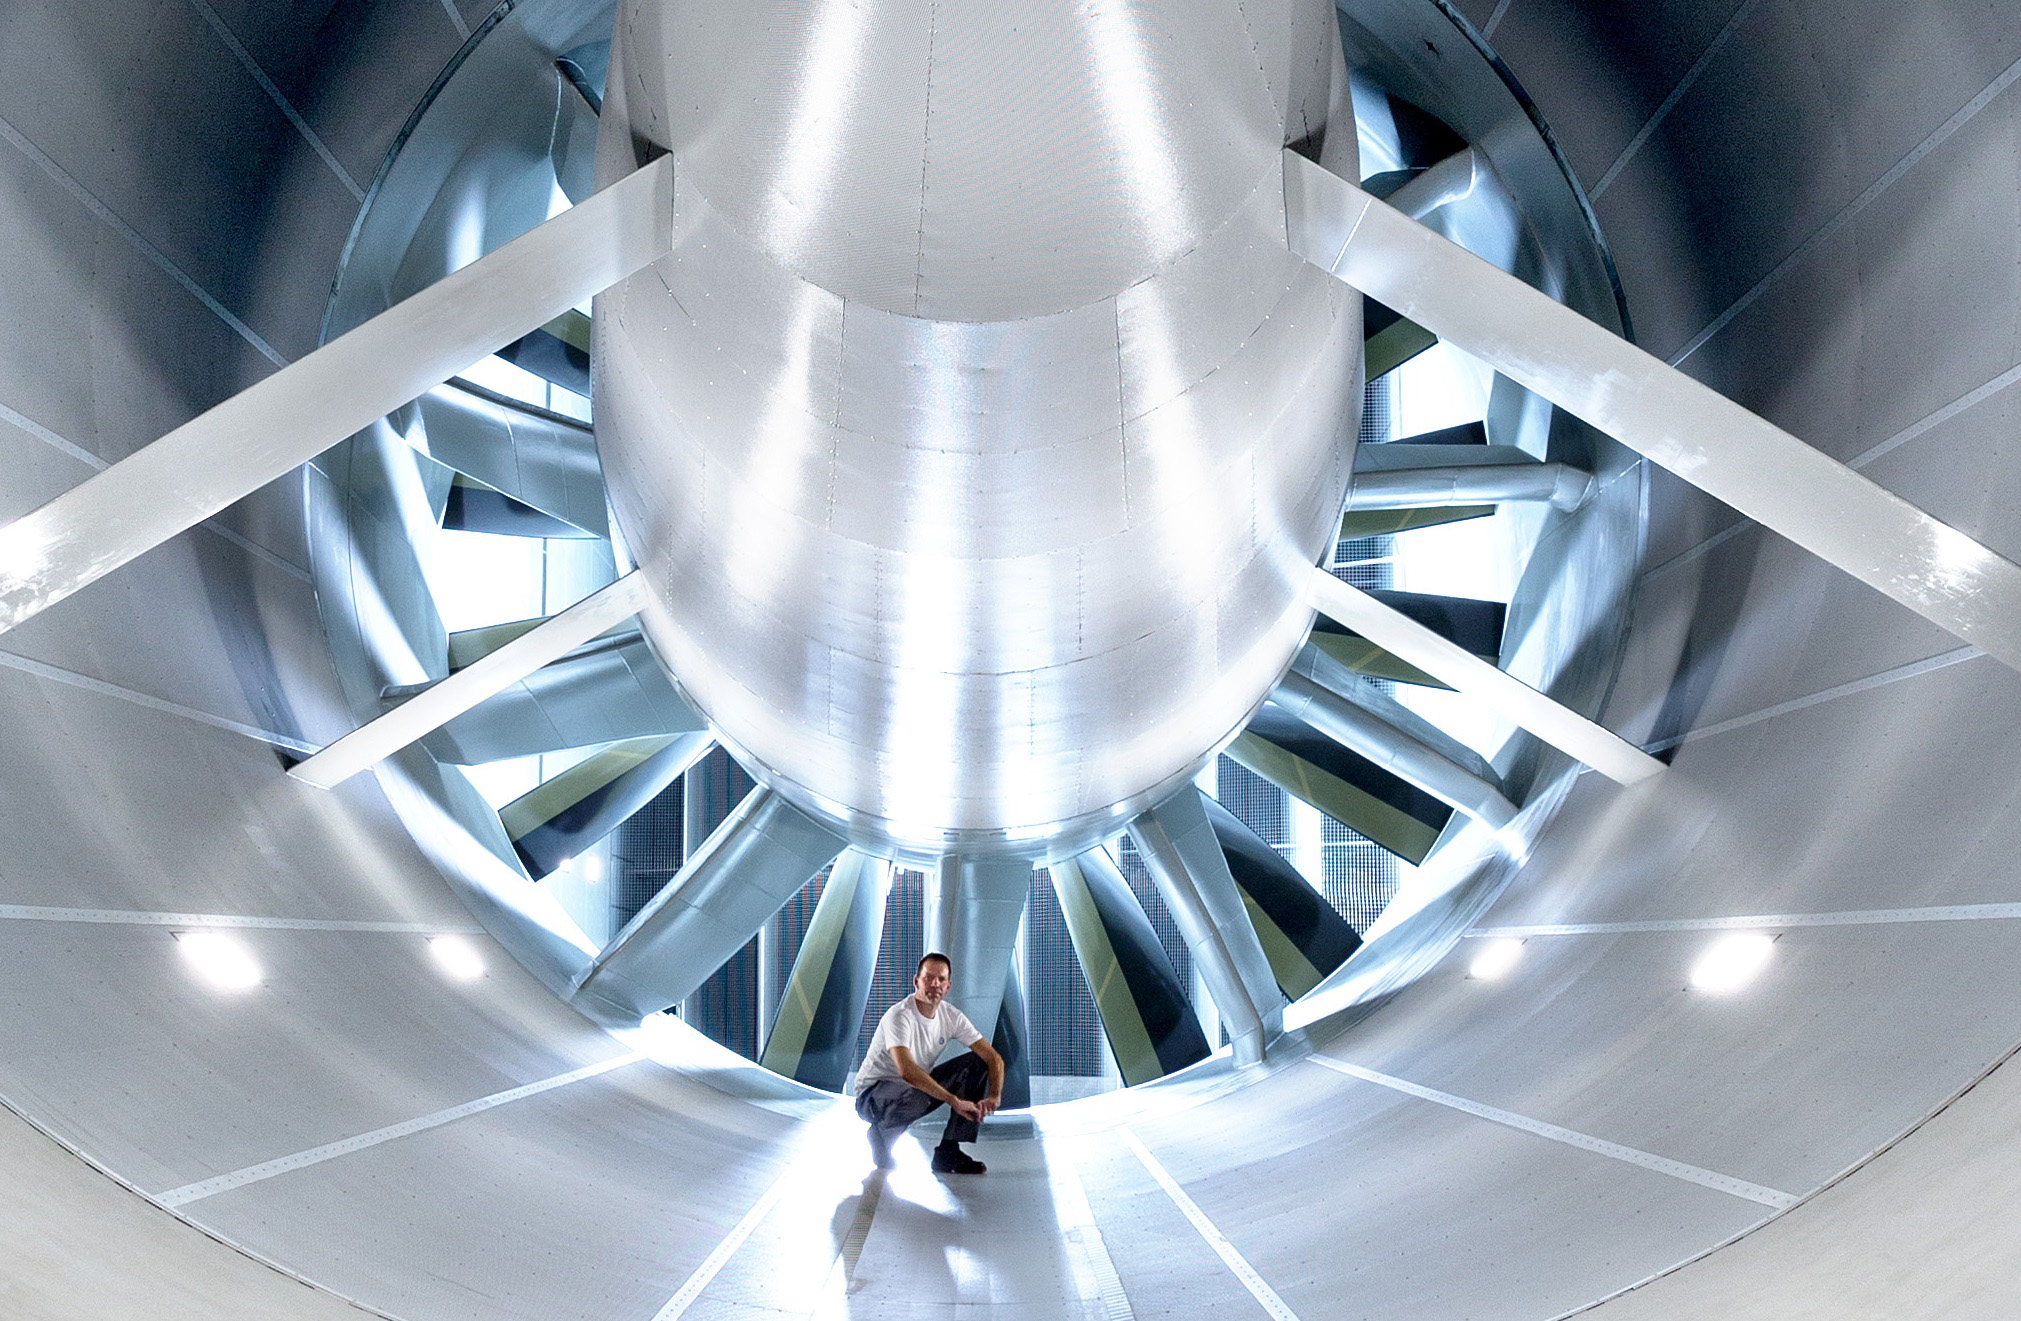 8 meter diameter wind tunnel efficiency centre at Volkswagen